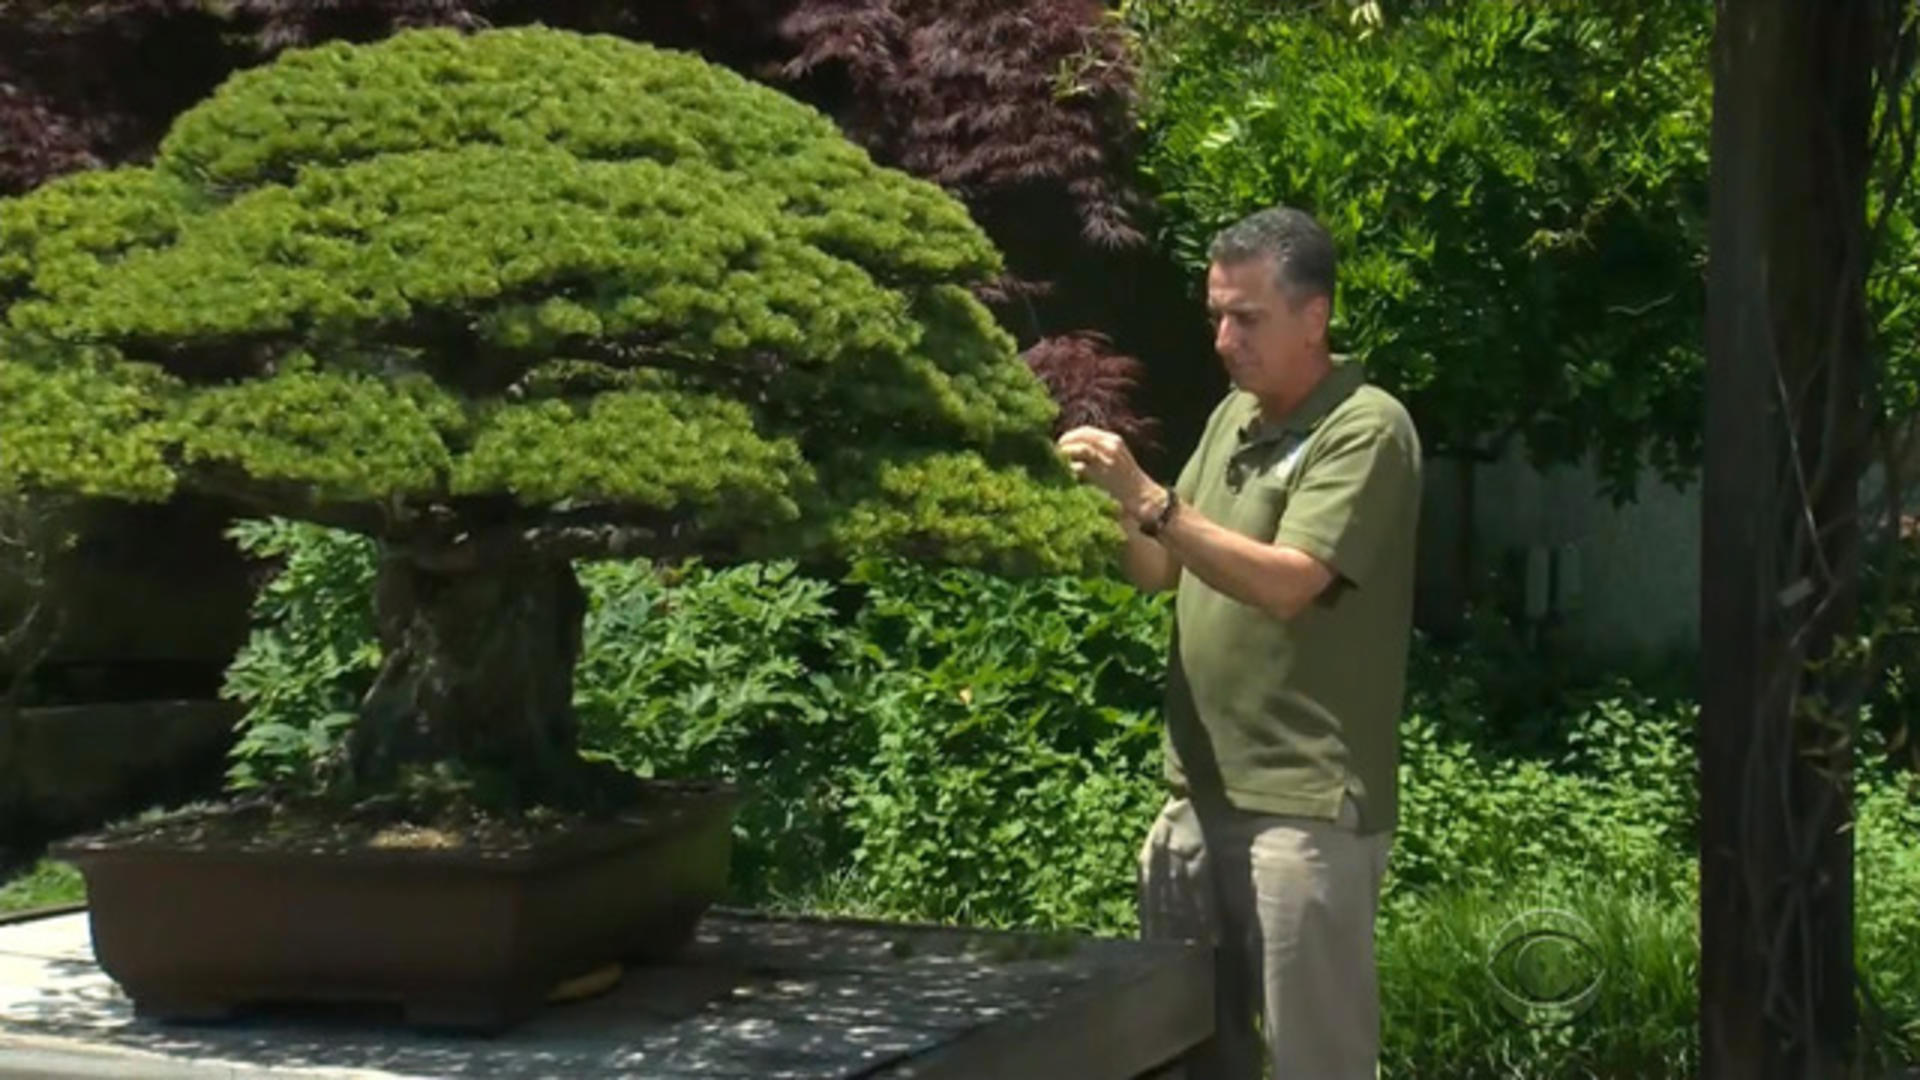 Bonsai Tree Aids Japanese And American Relations Cbs News